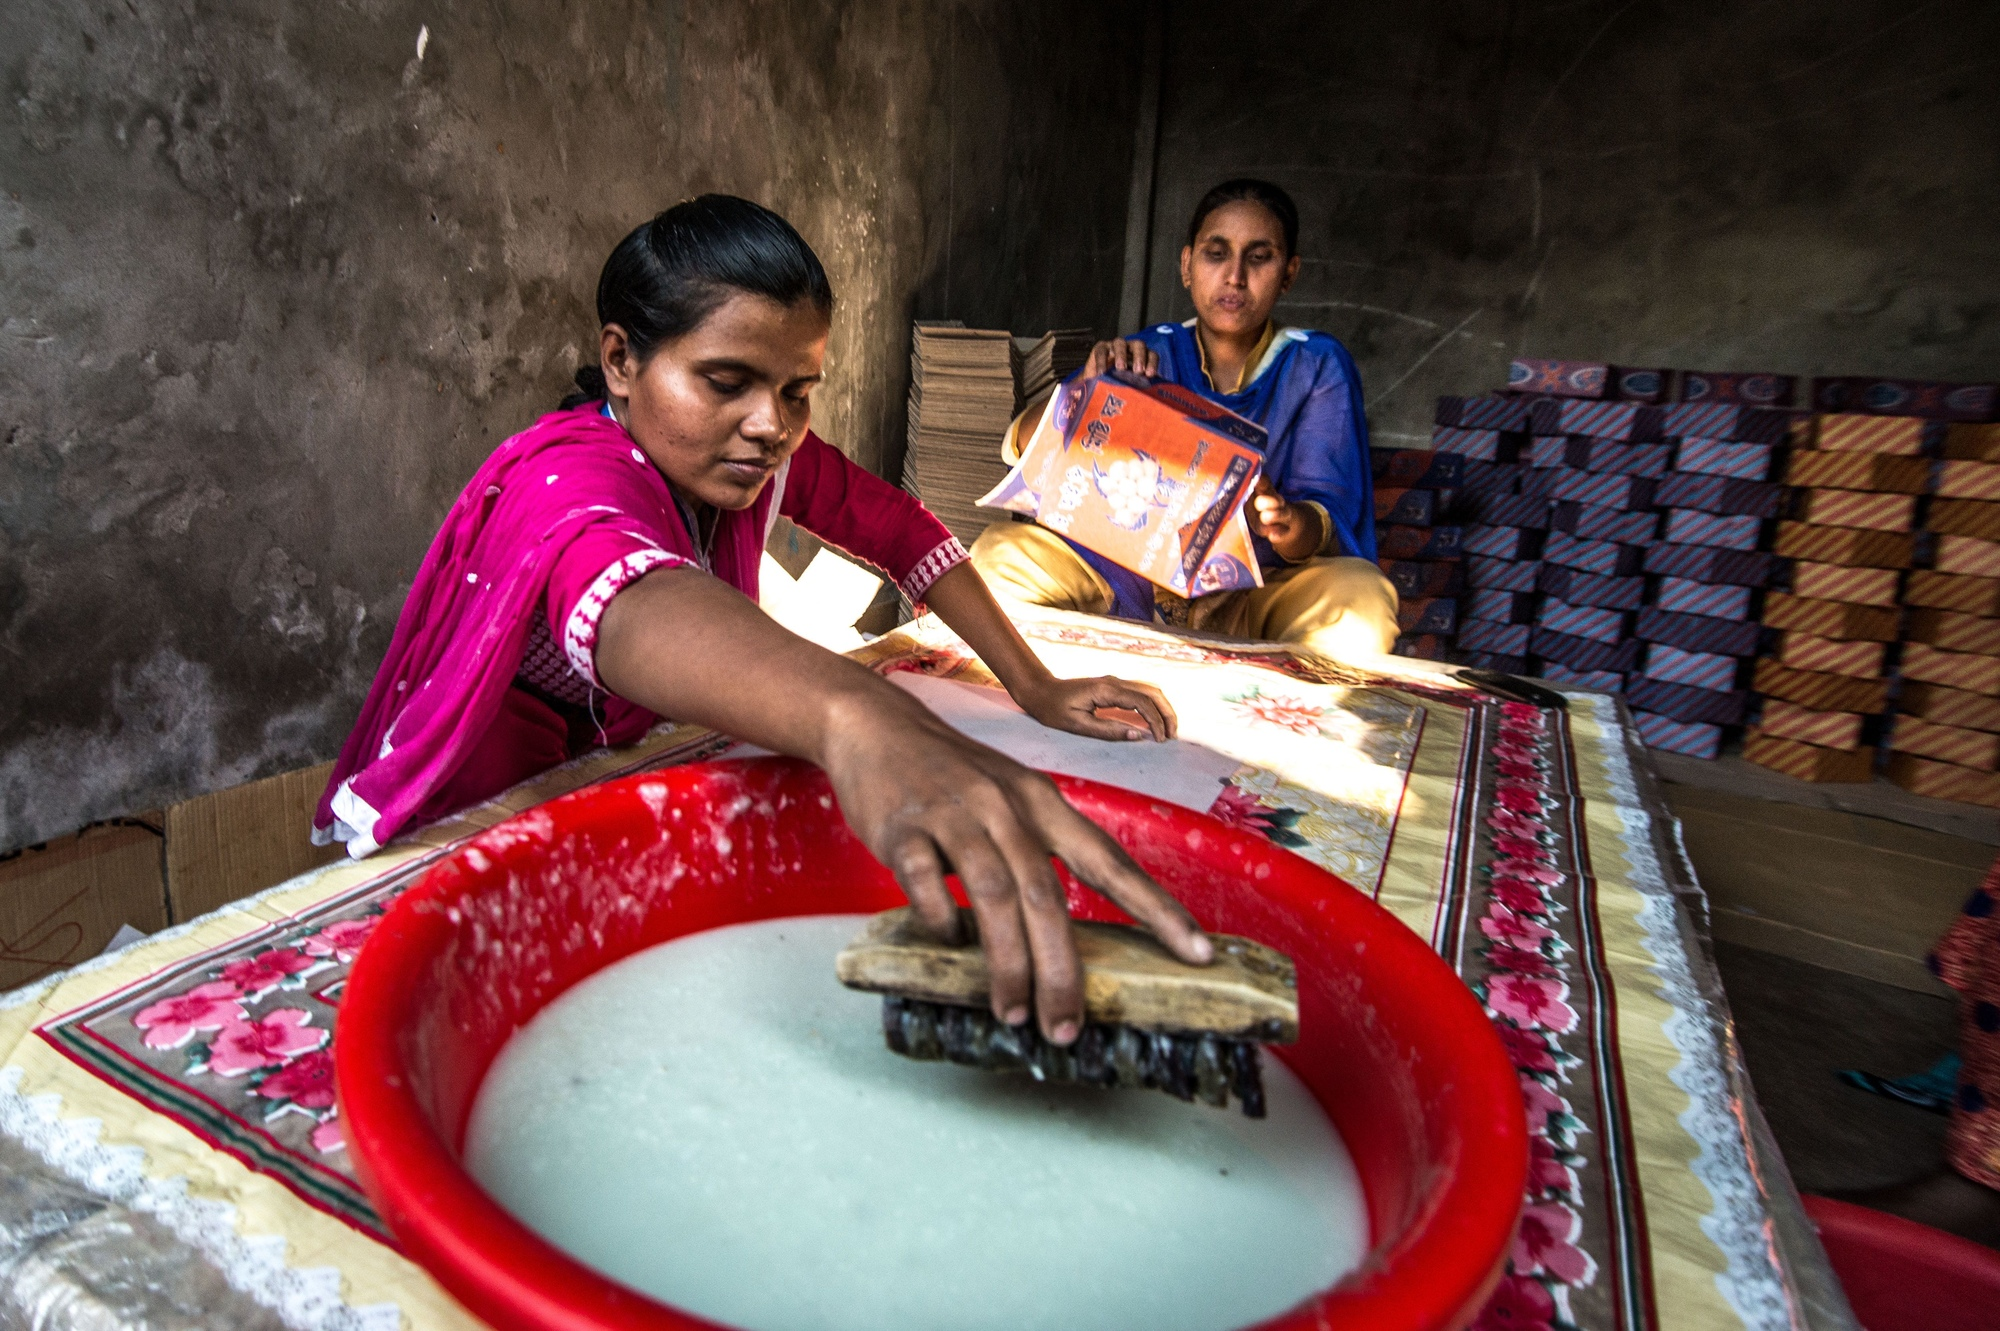 Women with disabilities working at their box-making business in Bangladesh.